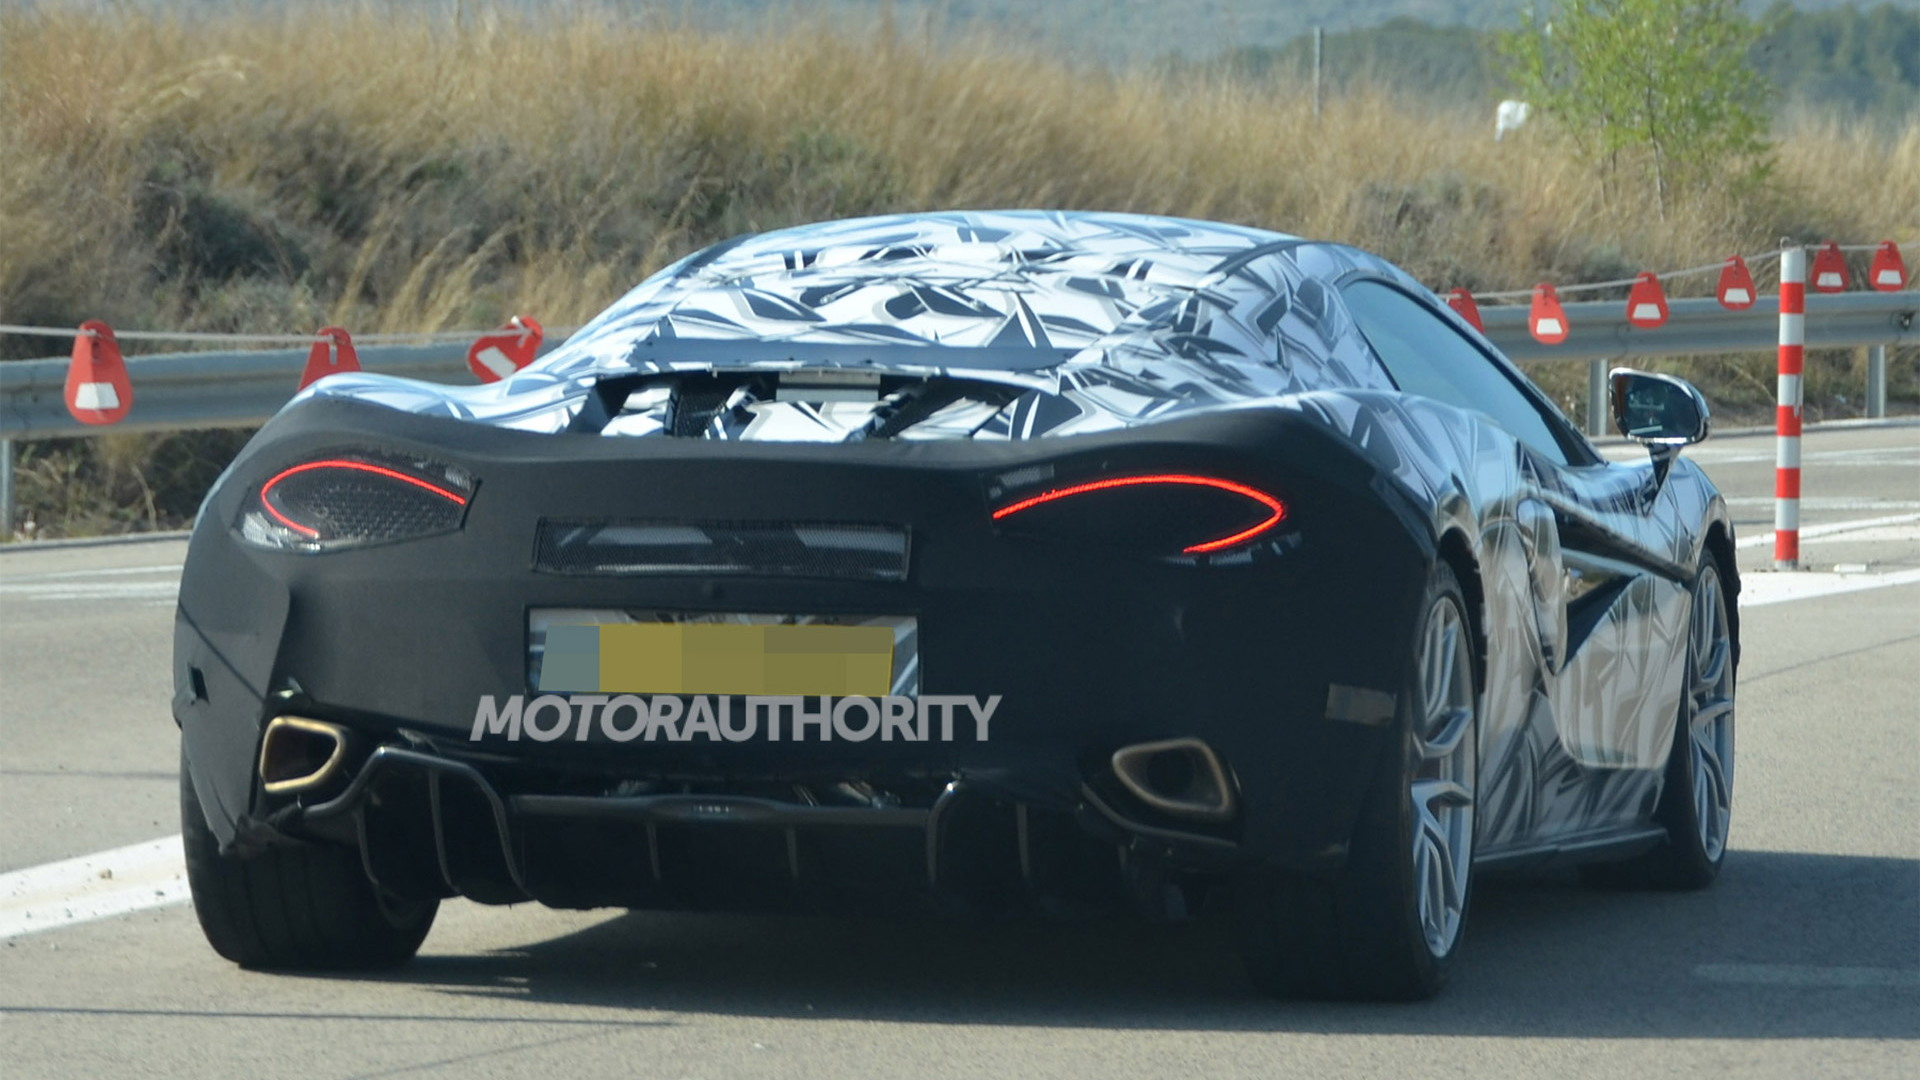 2016 McLaren Sports Series spy shots - Image via S. Baldauf/SB-Medien